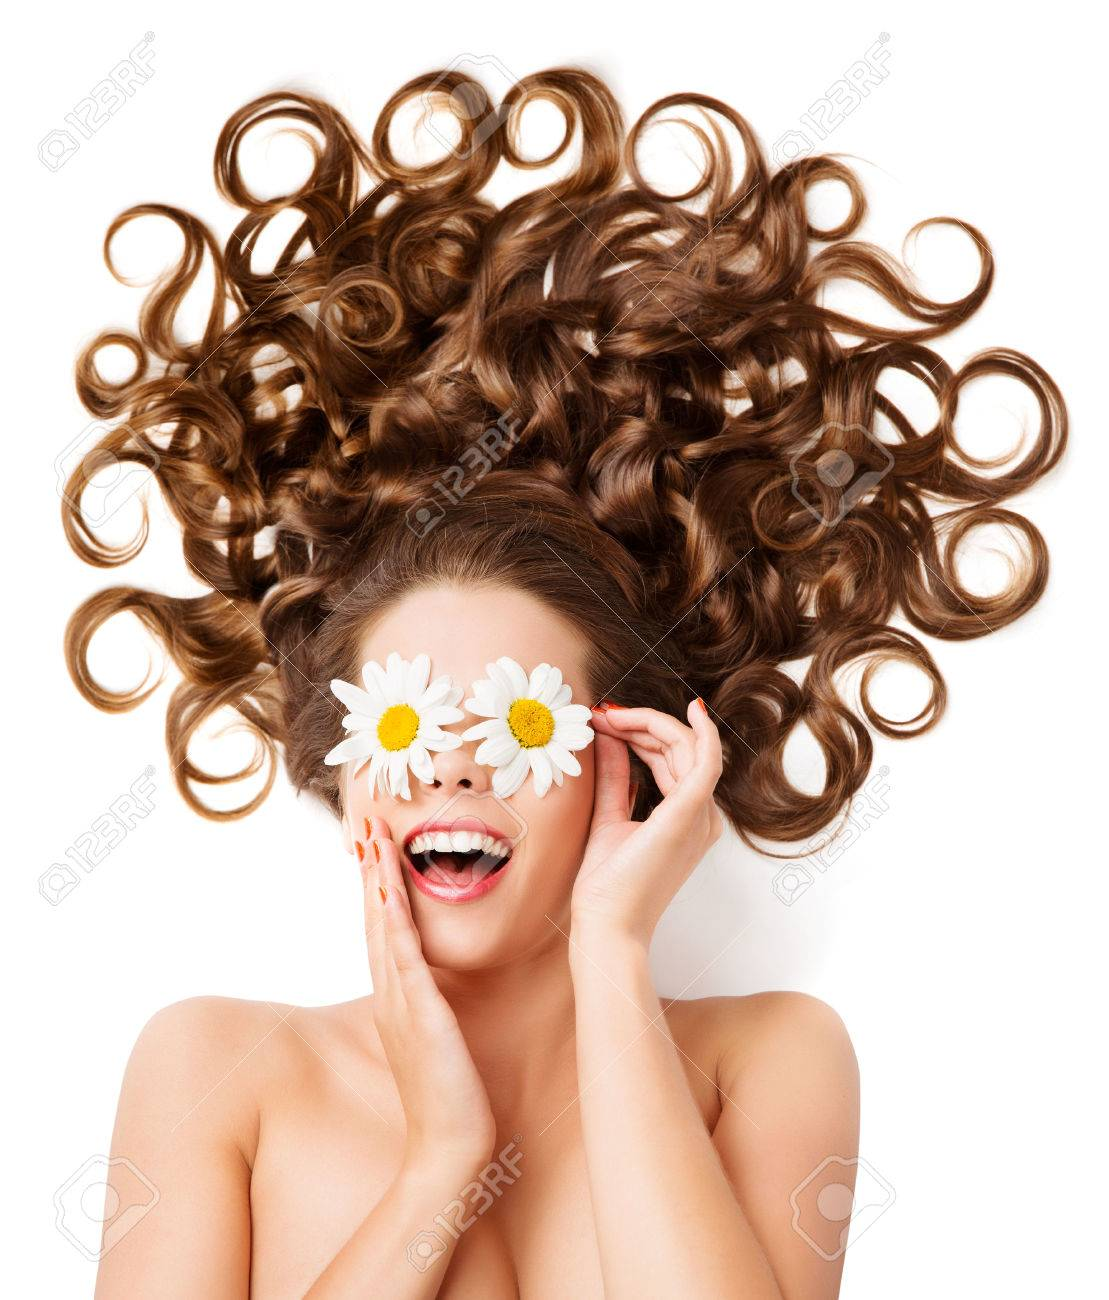 Woman Hair Curls, Girl Hairstyle, White Daisy Flowers Glasses On Eyes - 60365754